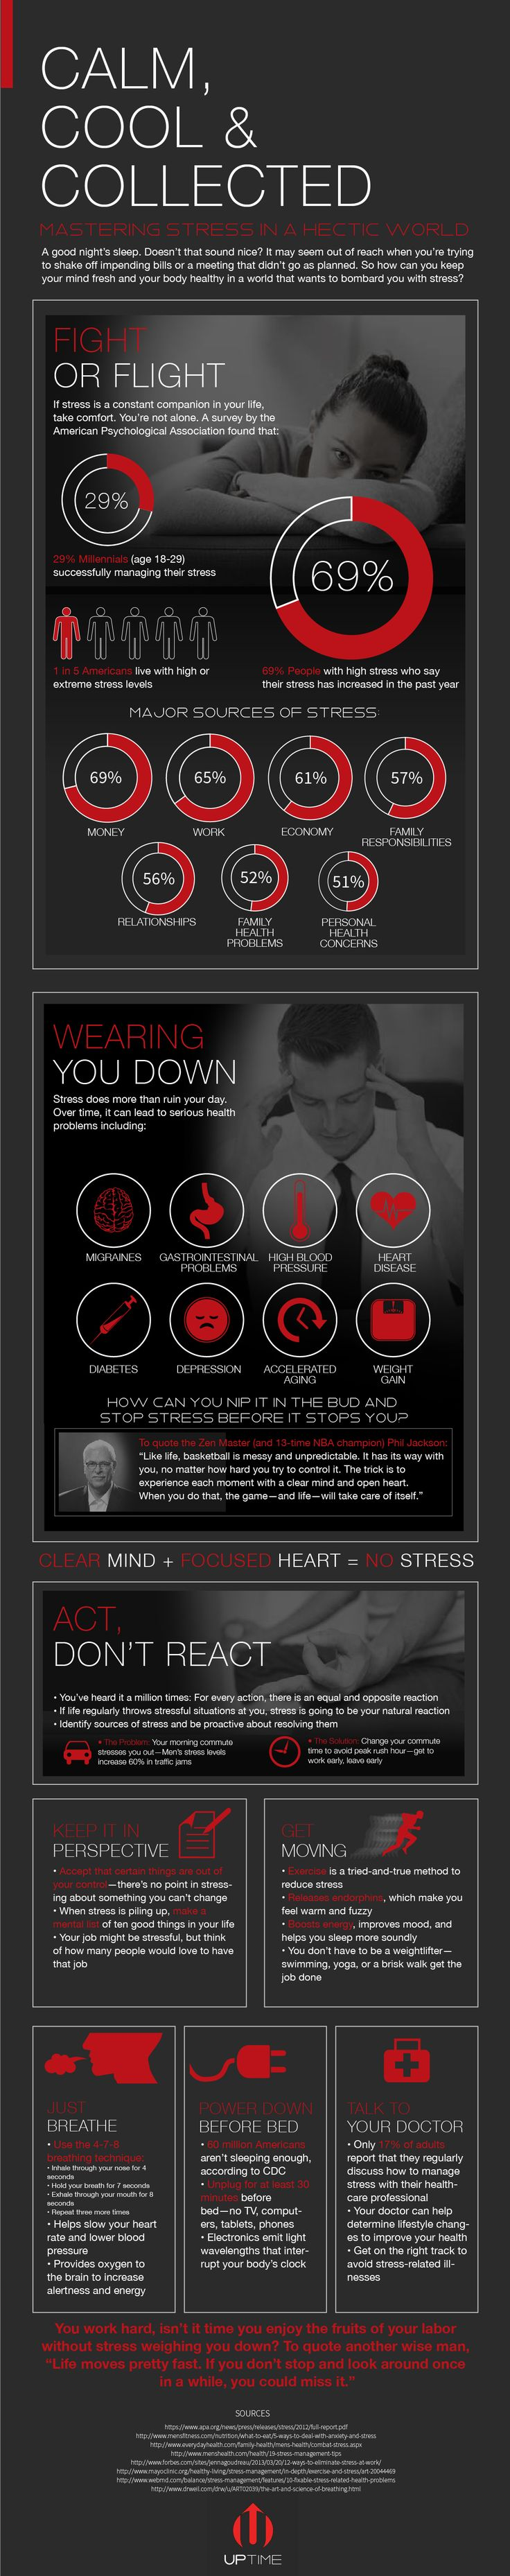 Calm, Cool, Collected: Mastering Stress in a Hectic World [by UPTIME Energy -- via #tipsographic]. More at tipsographic.com